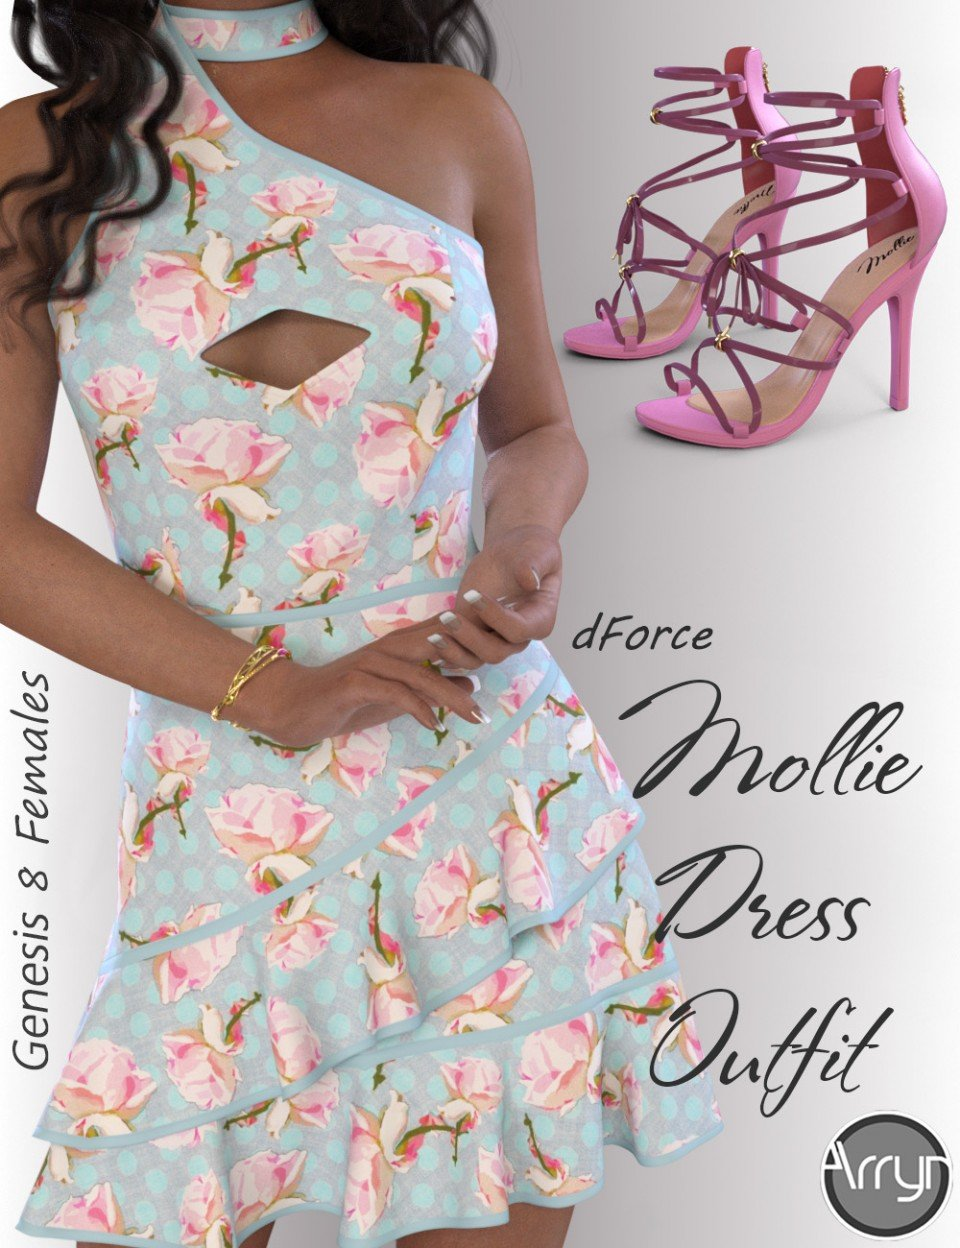 dForce Mollie Candy Dress Outfit for Genesis 8 Female(s)_DAZ3D下载站